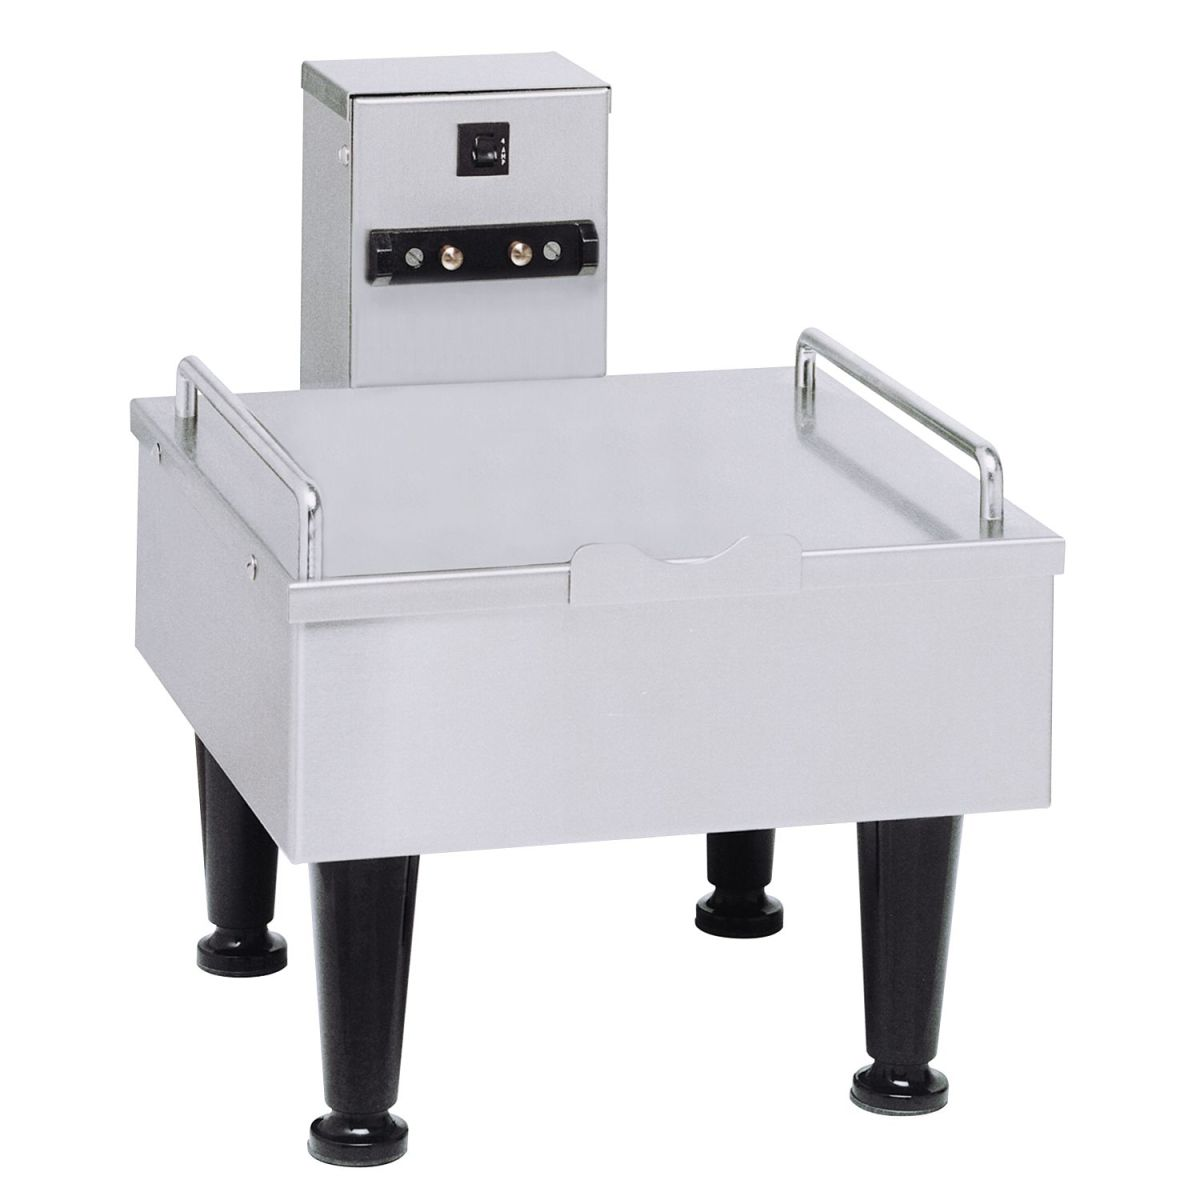 1SH Soft Heat Stand Stainless